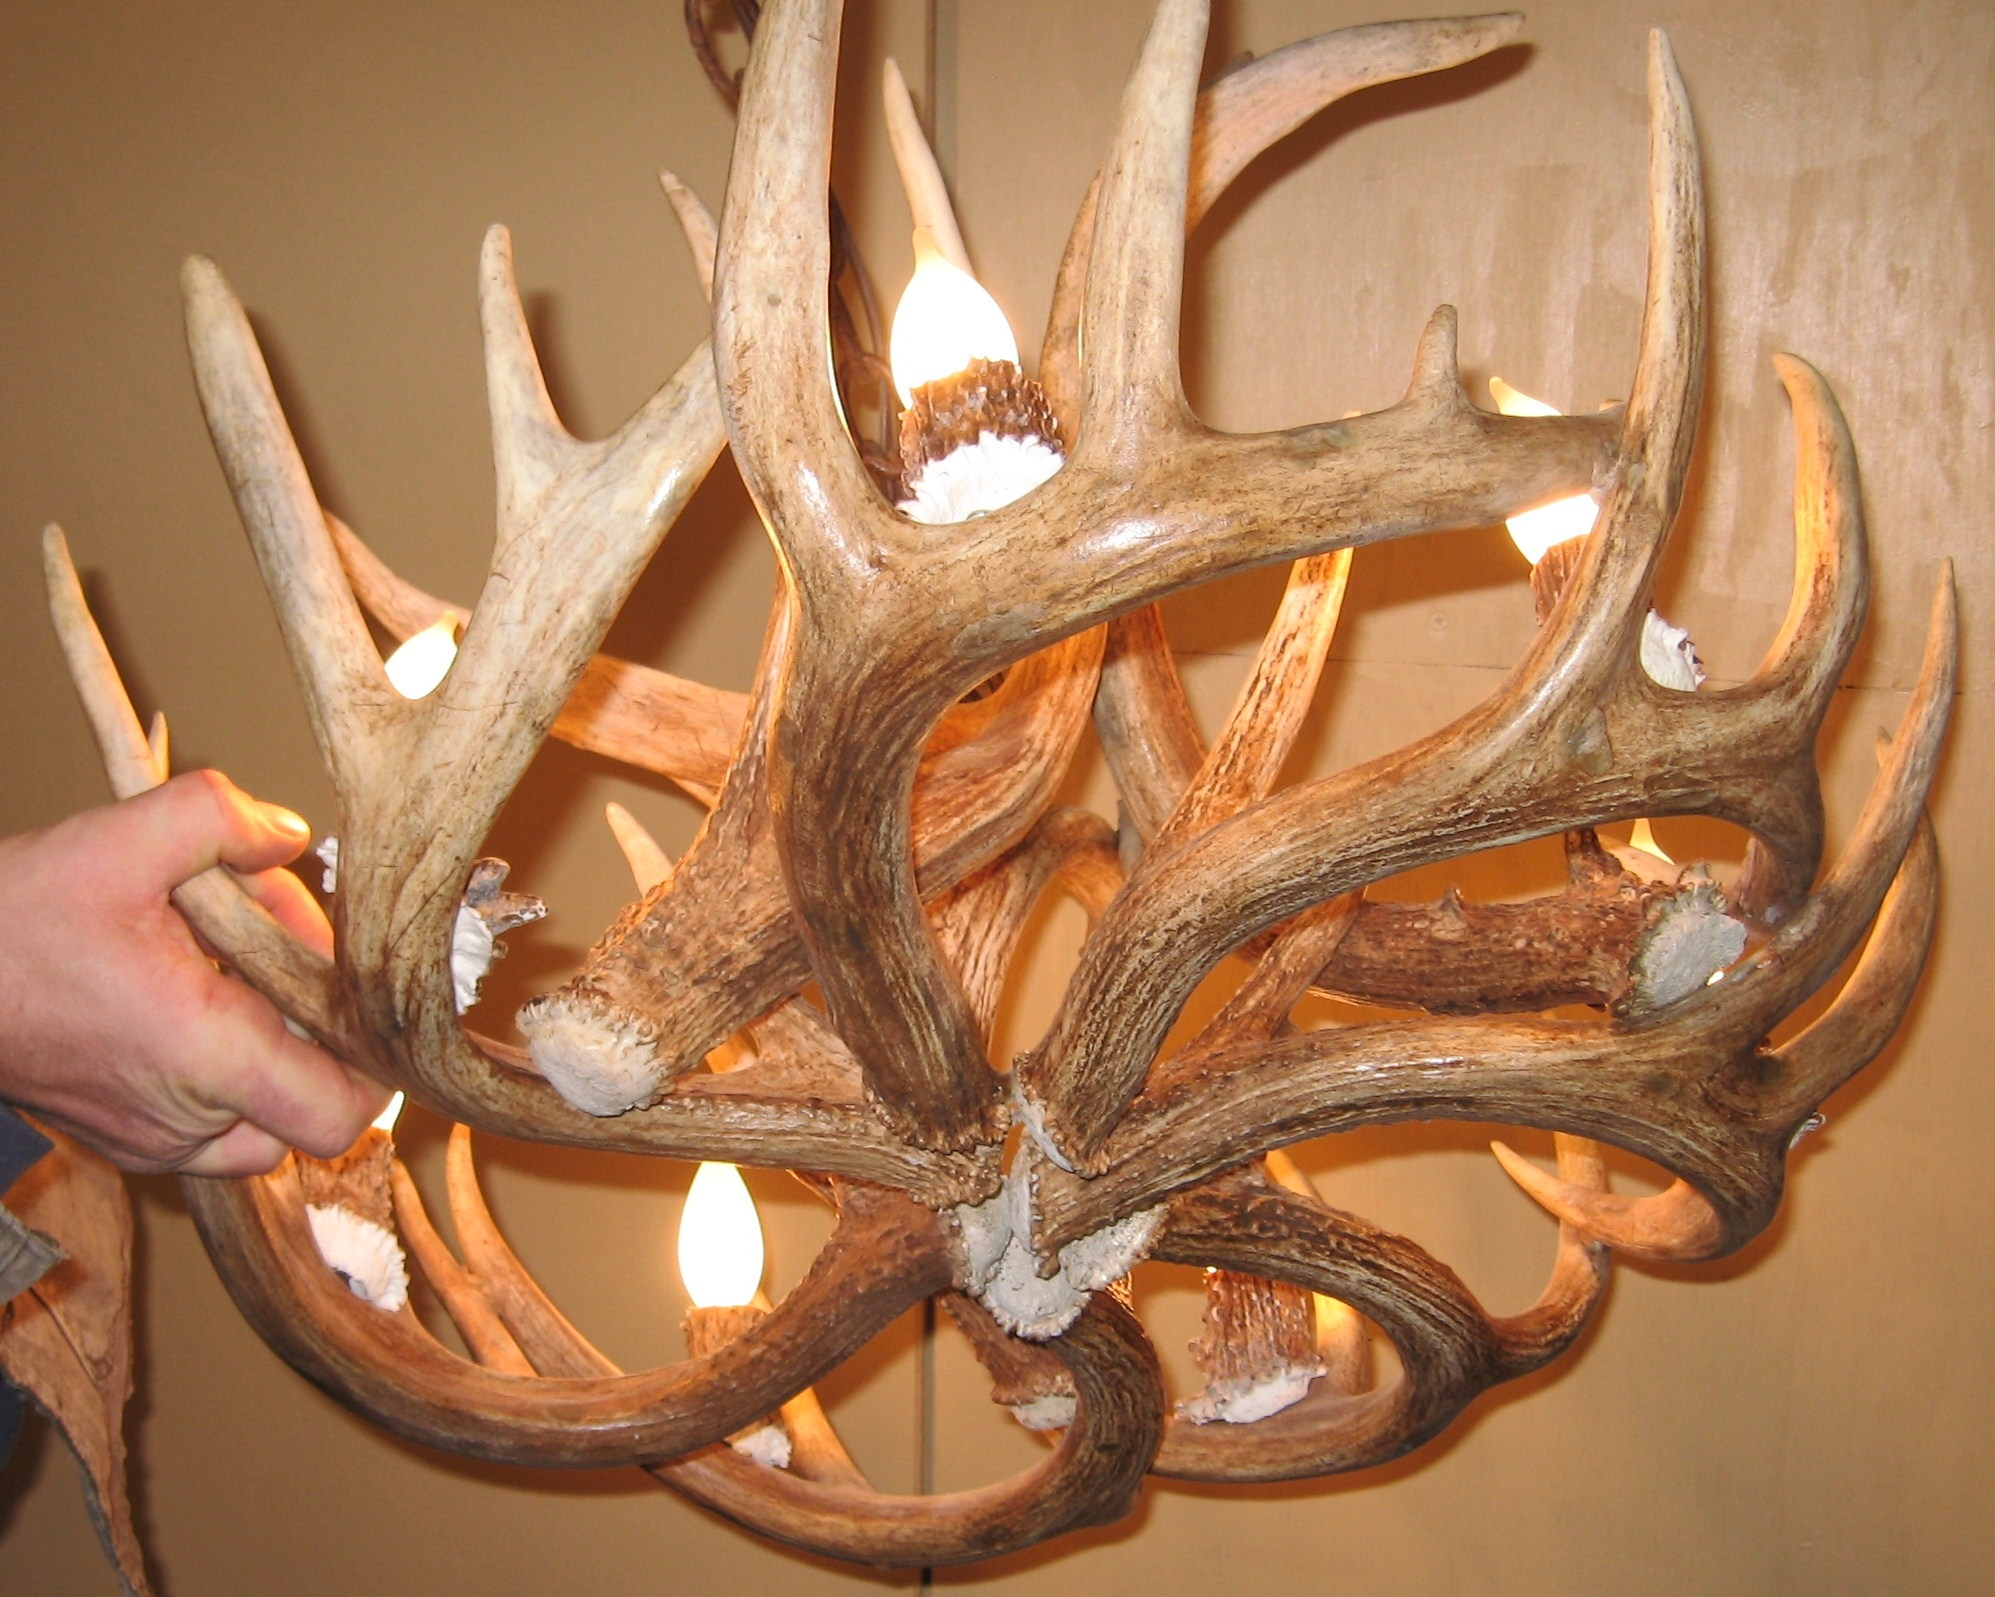 Round Whitetail Deer Antler Chandelier Intended For Antler Chandeliers And Lighting (#11 of 12)